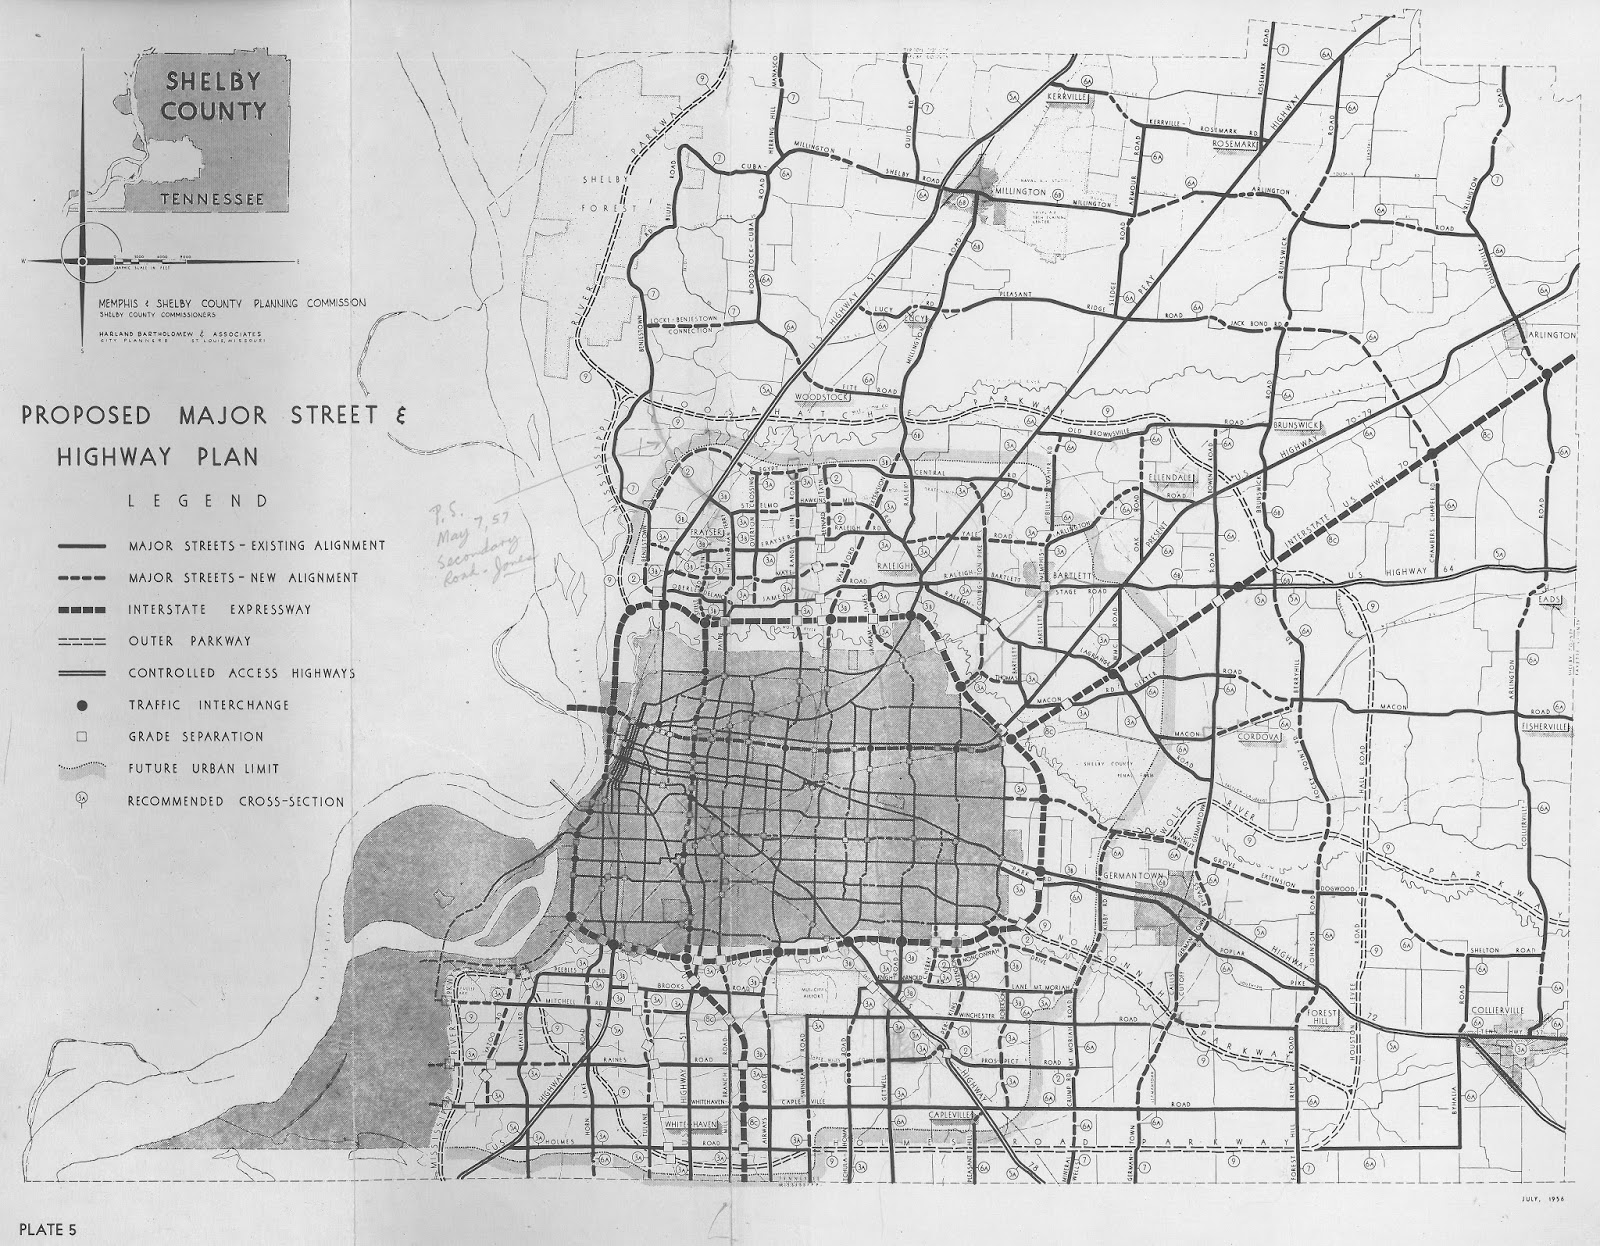 map no 10 harland bartholomew and associates was commissioned by the newly merged memphis and shelby county planning commission in 1956 to show proposed